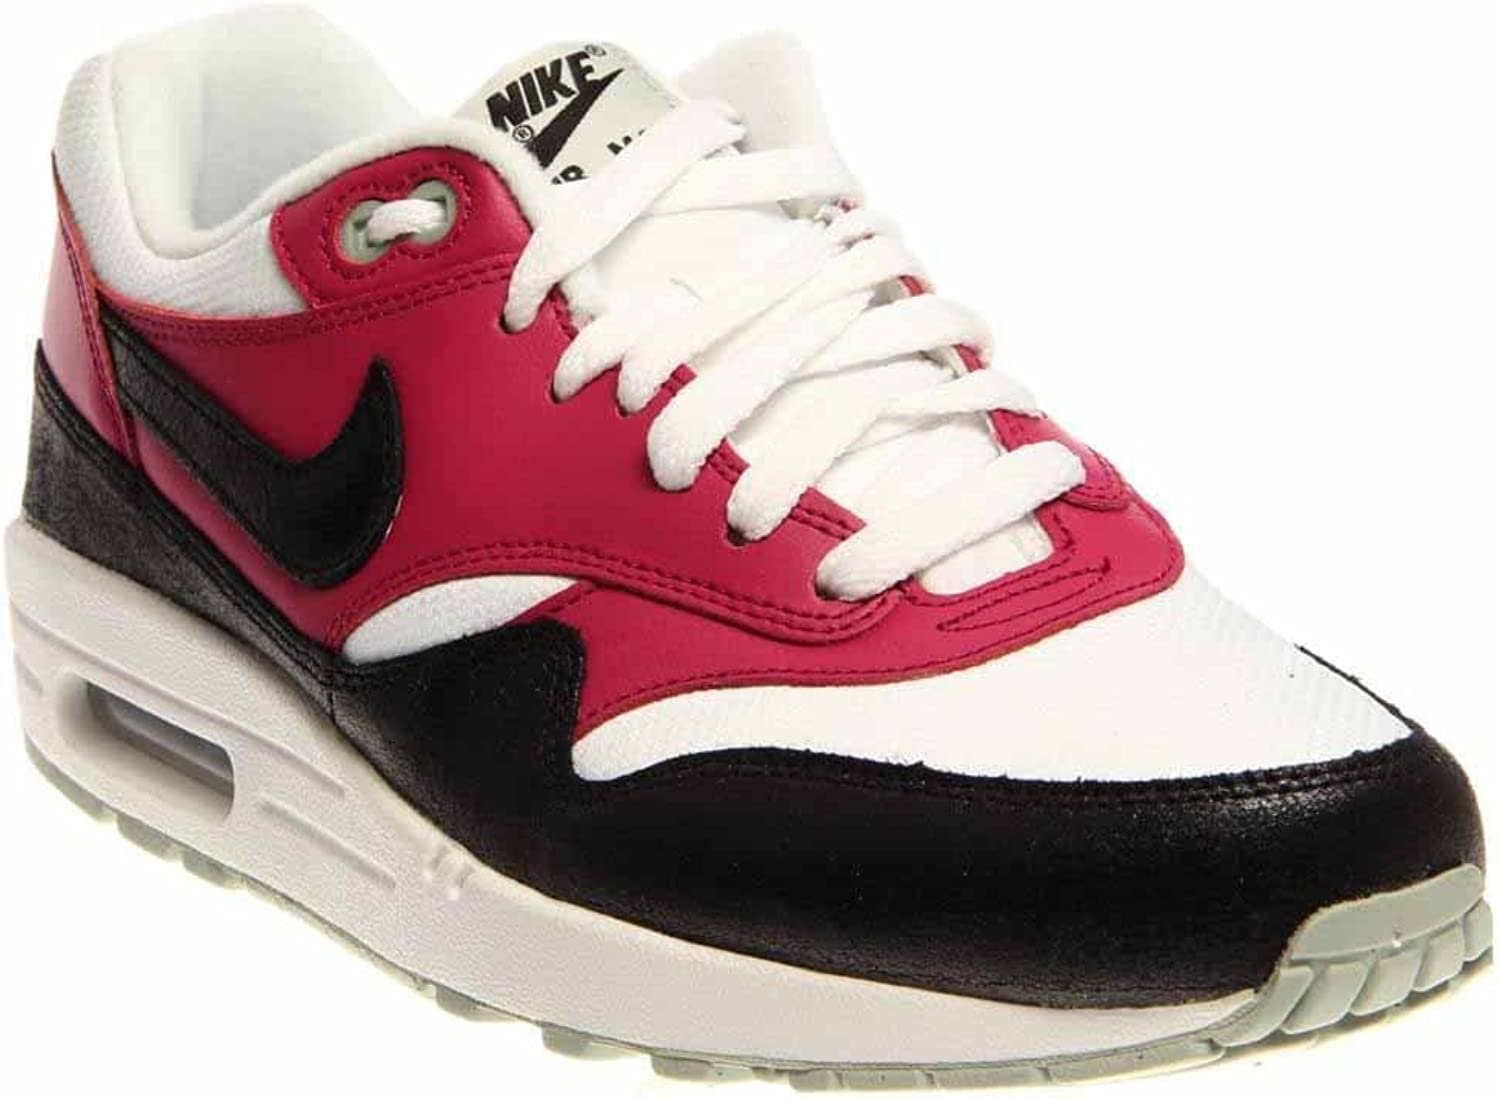 Nike Women's Wmns Air Max 1 Essential, WHITE BLACK-BRIGHT MAGENTA-S SPRY